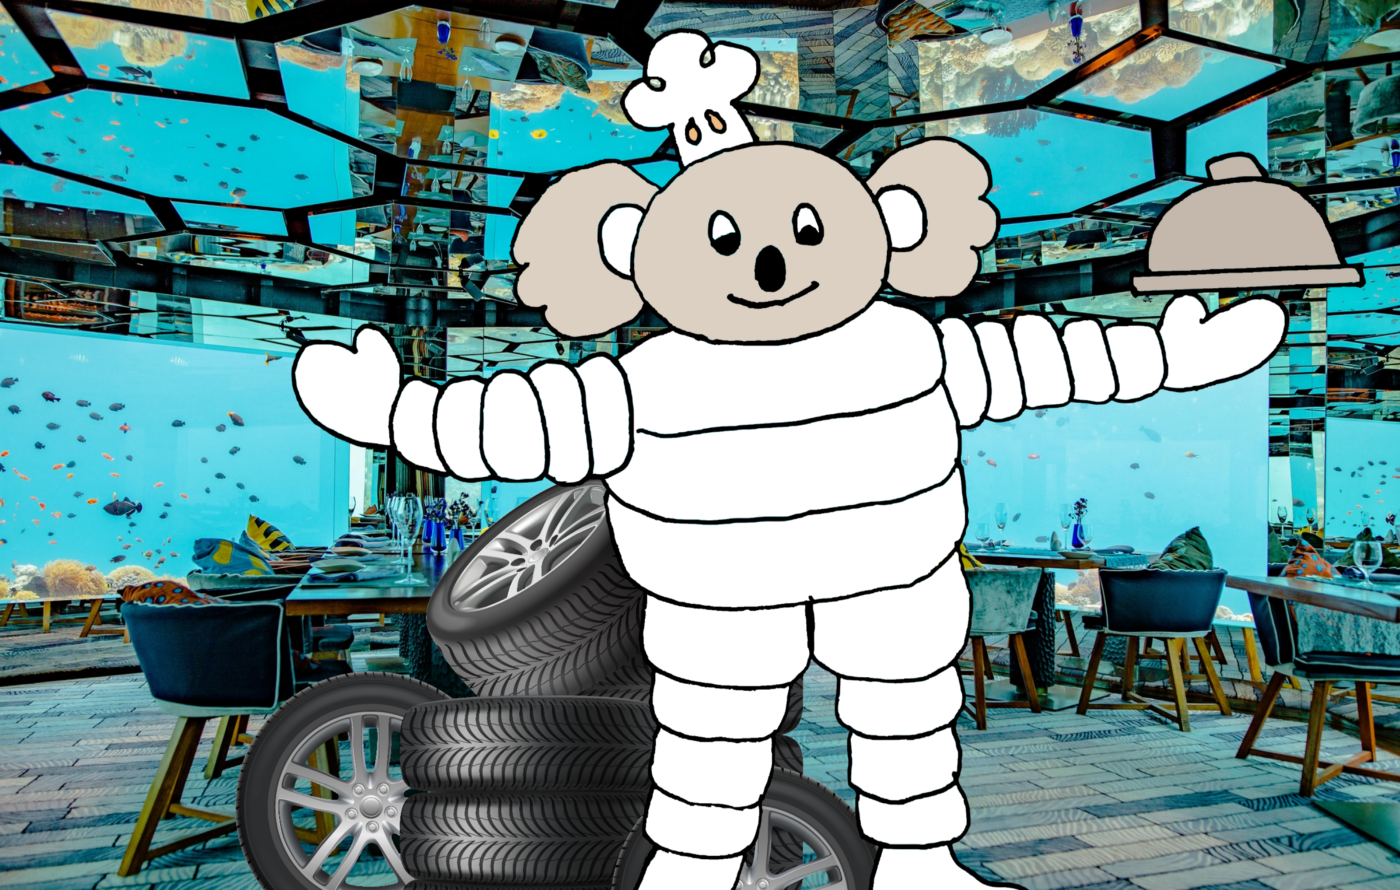 Illustration of a koala in a Michelin Man outfit holding a platter inside of a fancy restaurant. There is a pile of tires behind him.